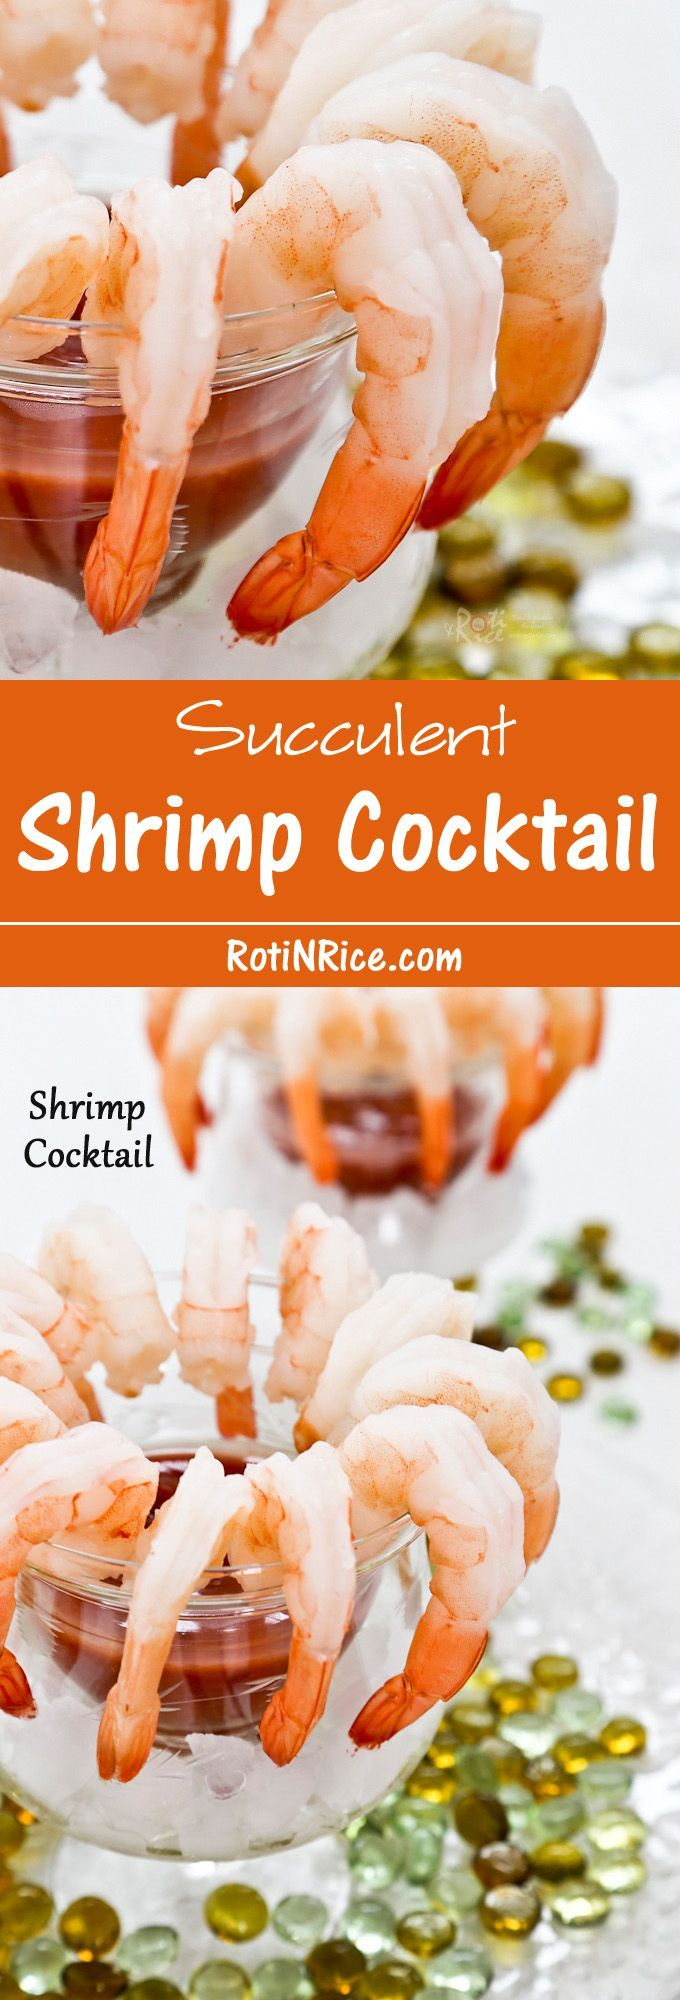 A delightful succulent Shrimp Cocktail with a slightly spicy and tangy tomato and horseradish sauce to start off your meal or holiday party. | Food to gladden the heart at http://RotiNRice.com